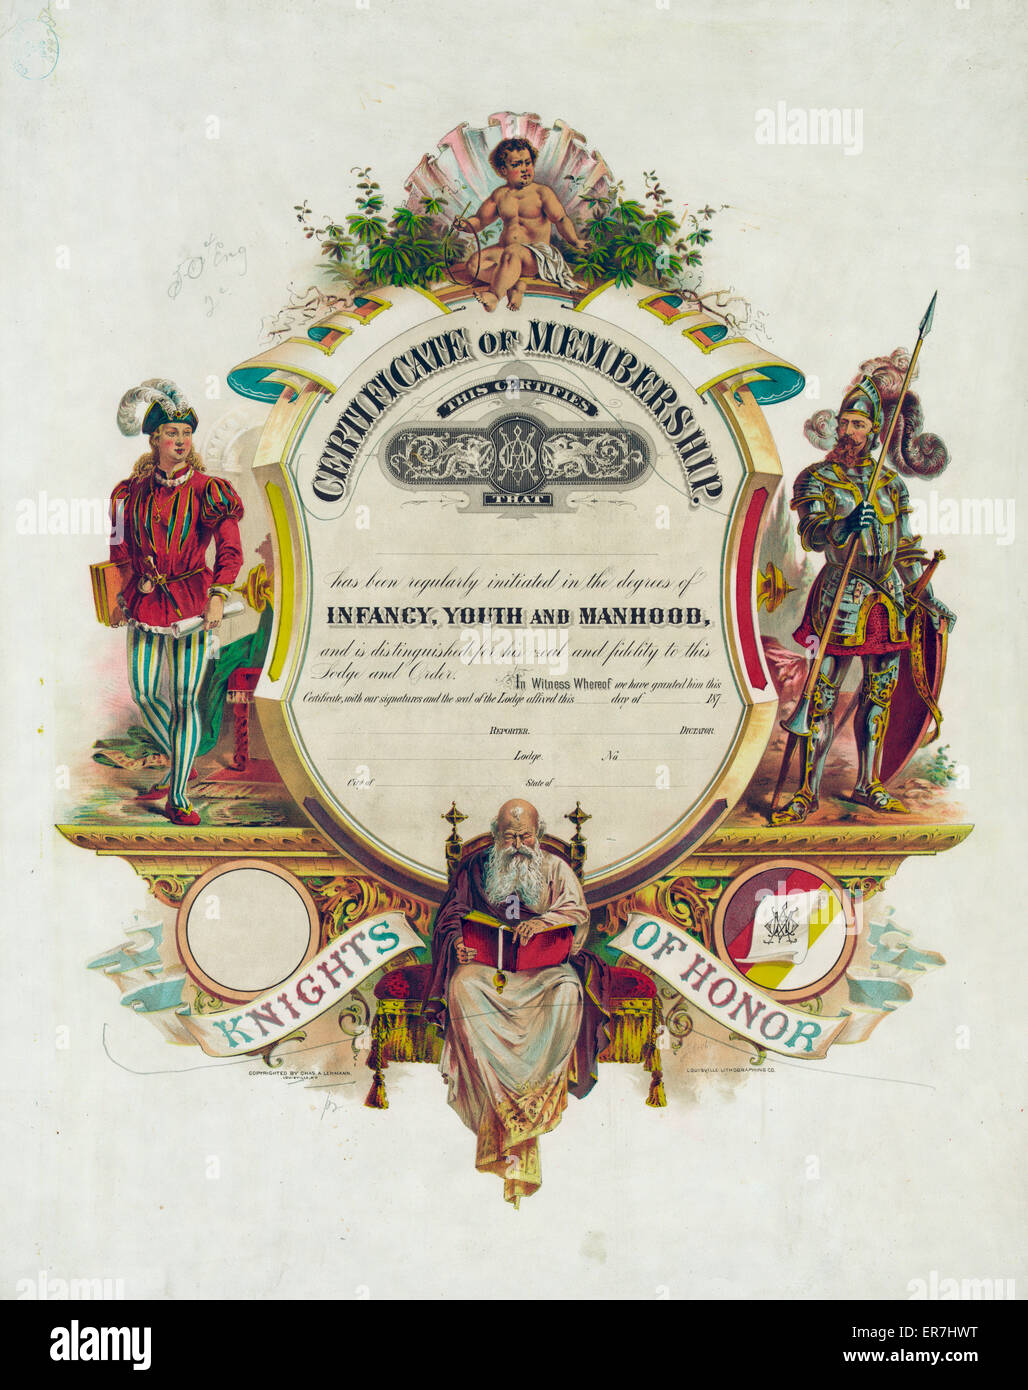 Knights of honor. Date c1878. - Stock Image